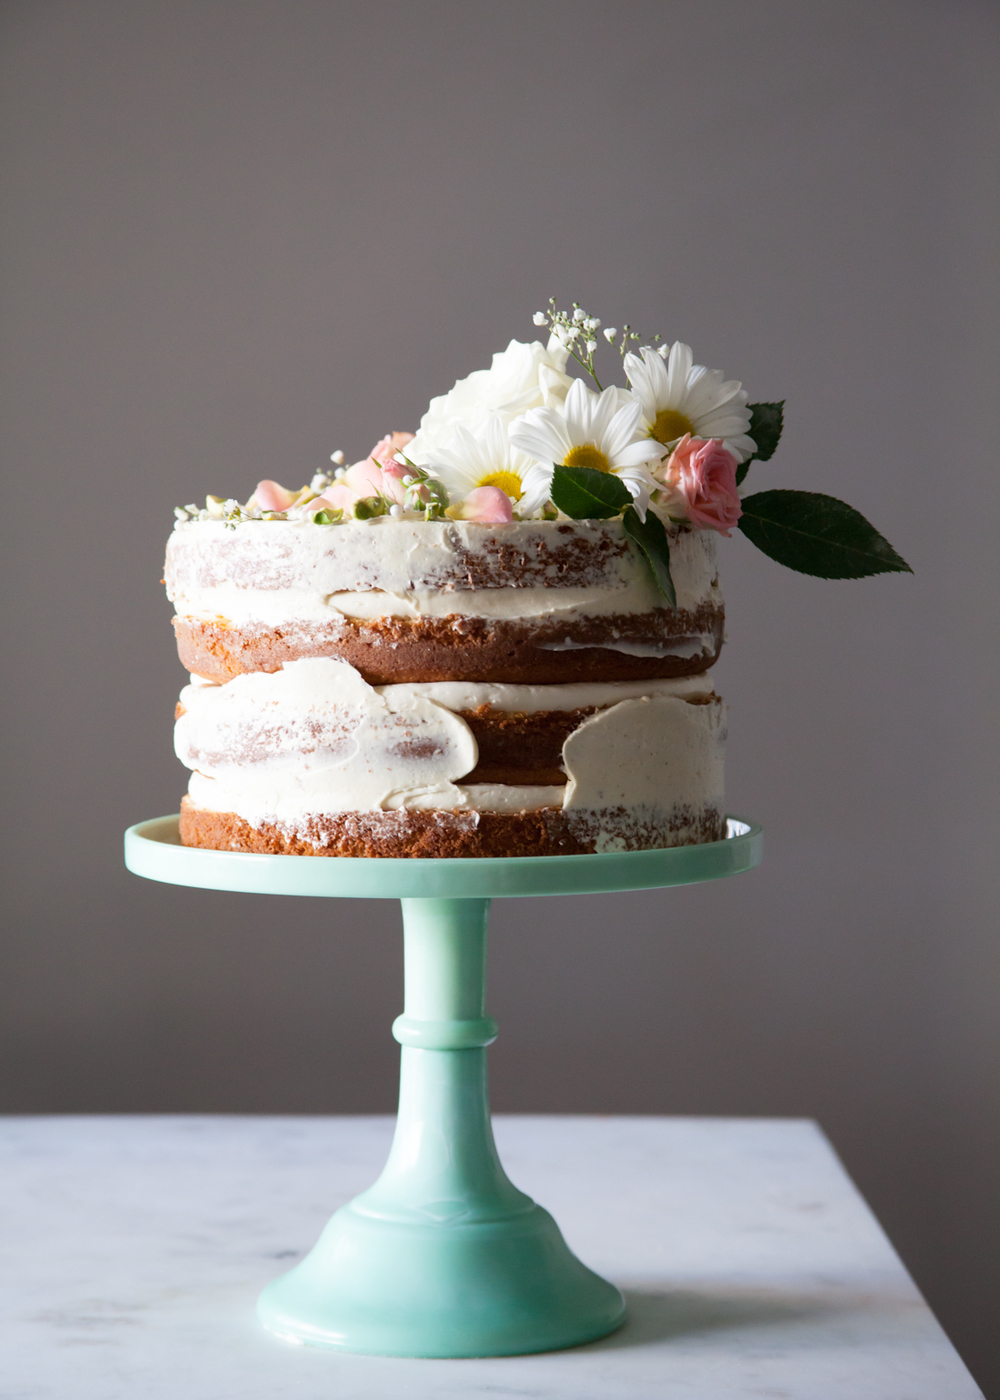 How To Make A Naked Cake Decoration